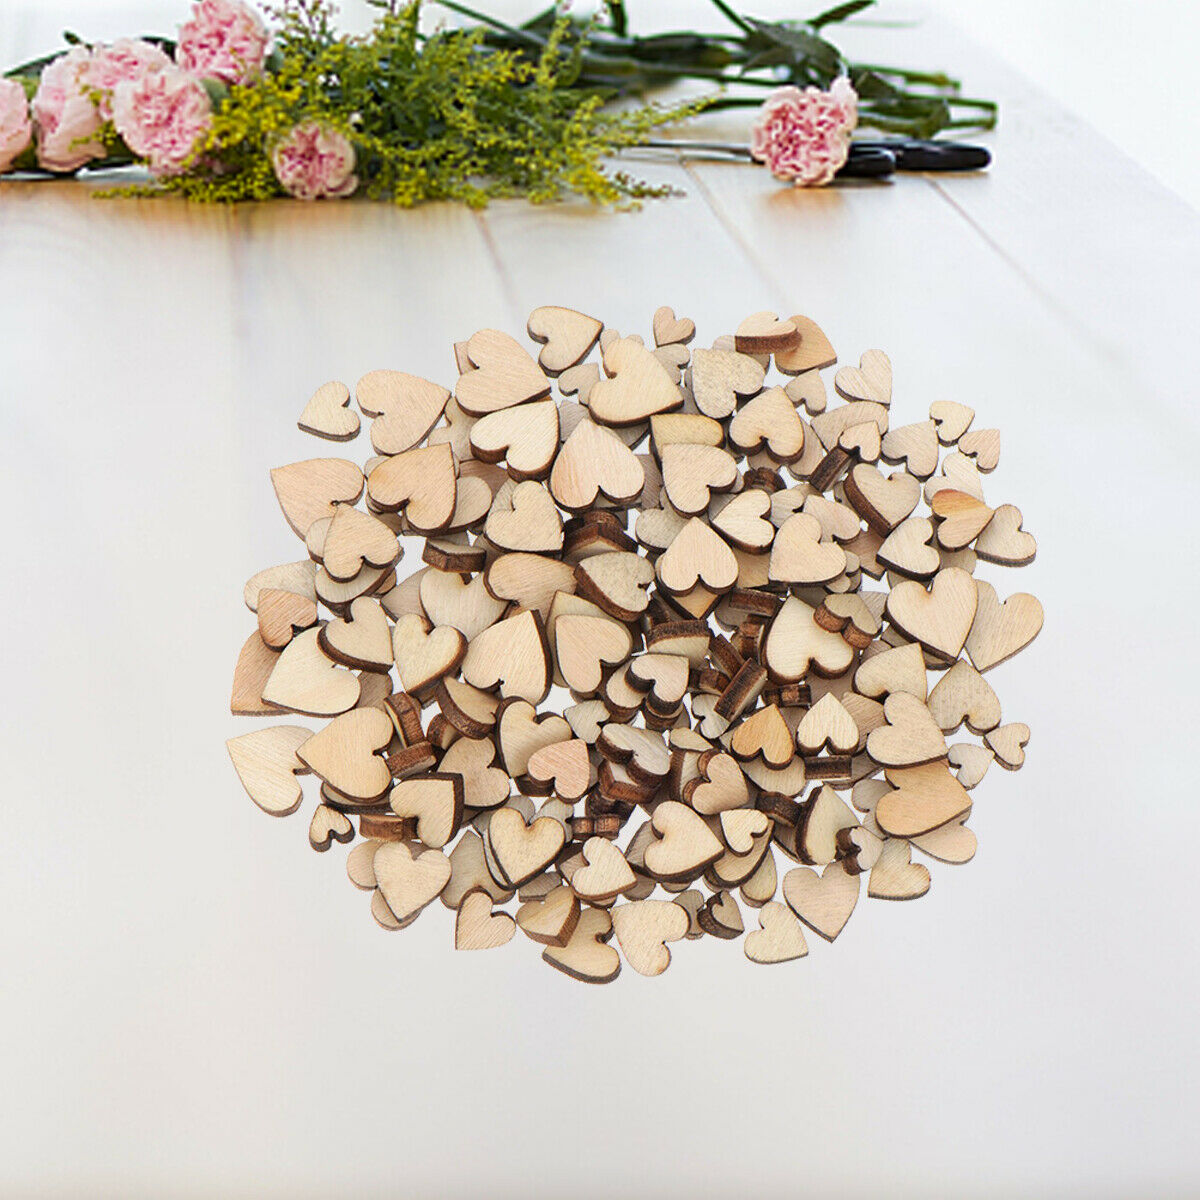 Details About 200pcs Rustic Wooden Love Heart Wedding Table Scatter Decoration Wood Crafts